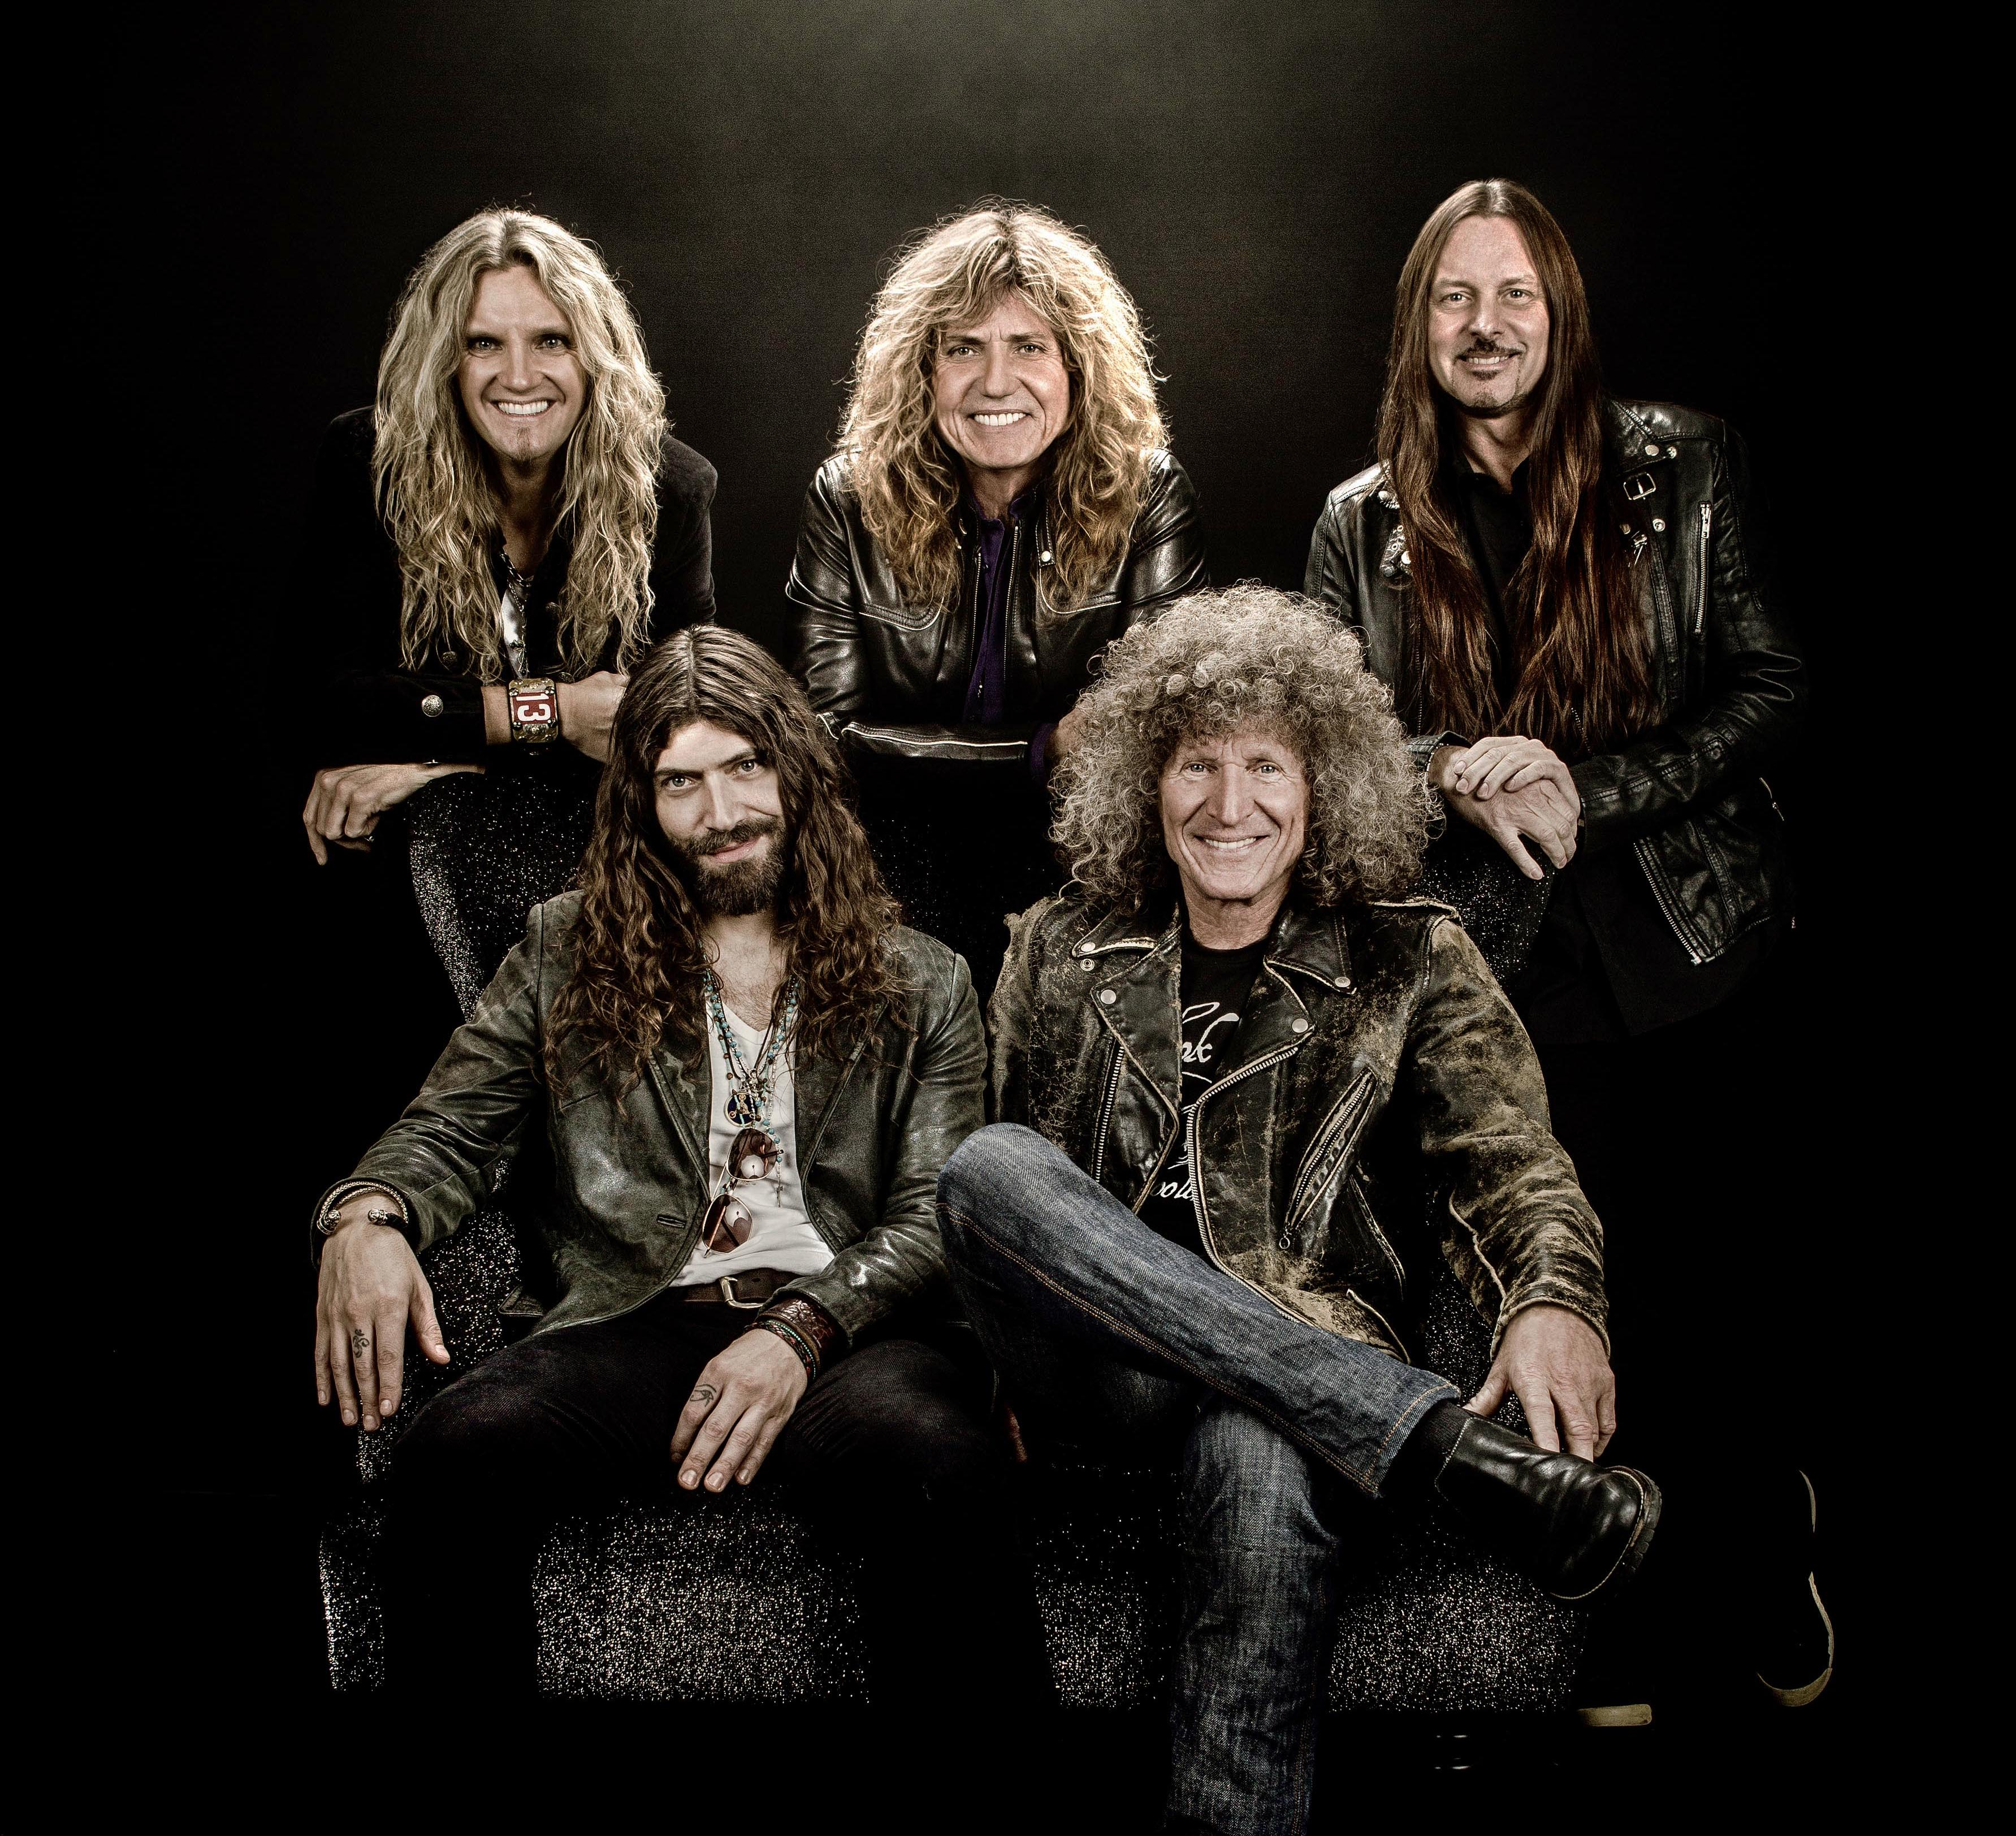 Whitesnake Deep Purple Coverdale хард рок Альберт Сафиуллин